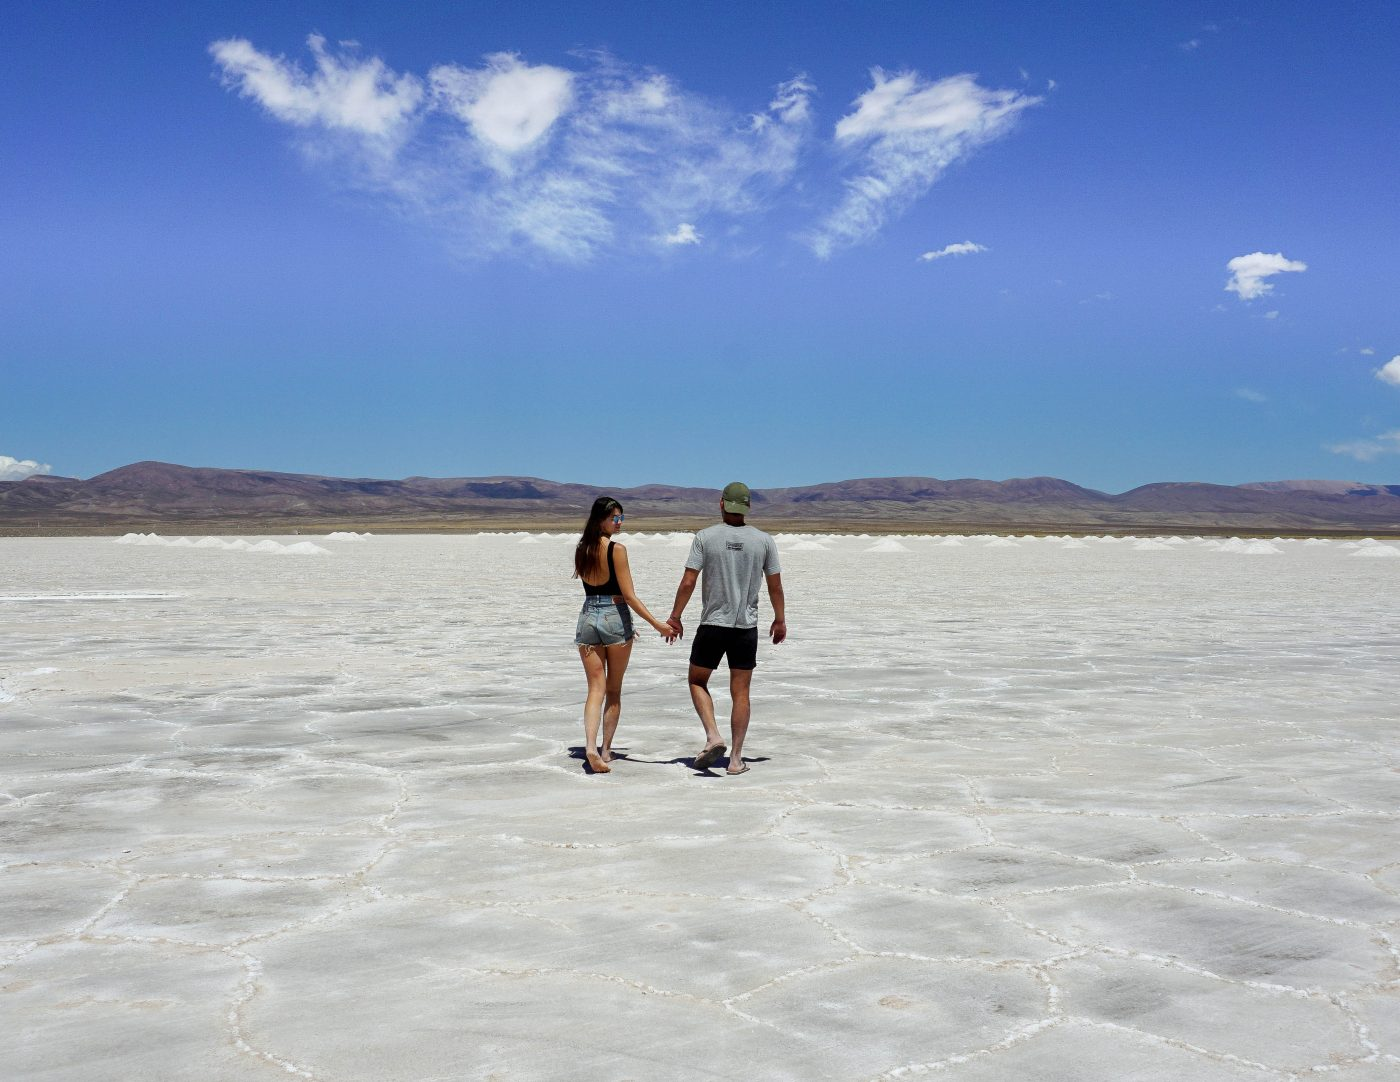 All you need to know about Jujuy Salinas Grandes Jujuy 3 day itinerary